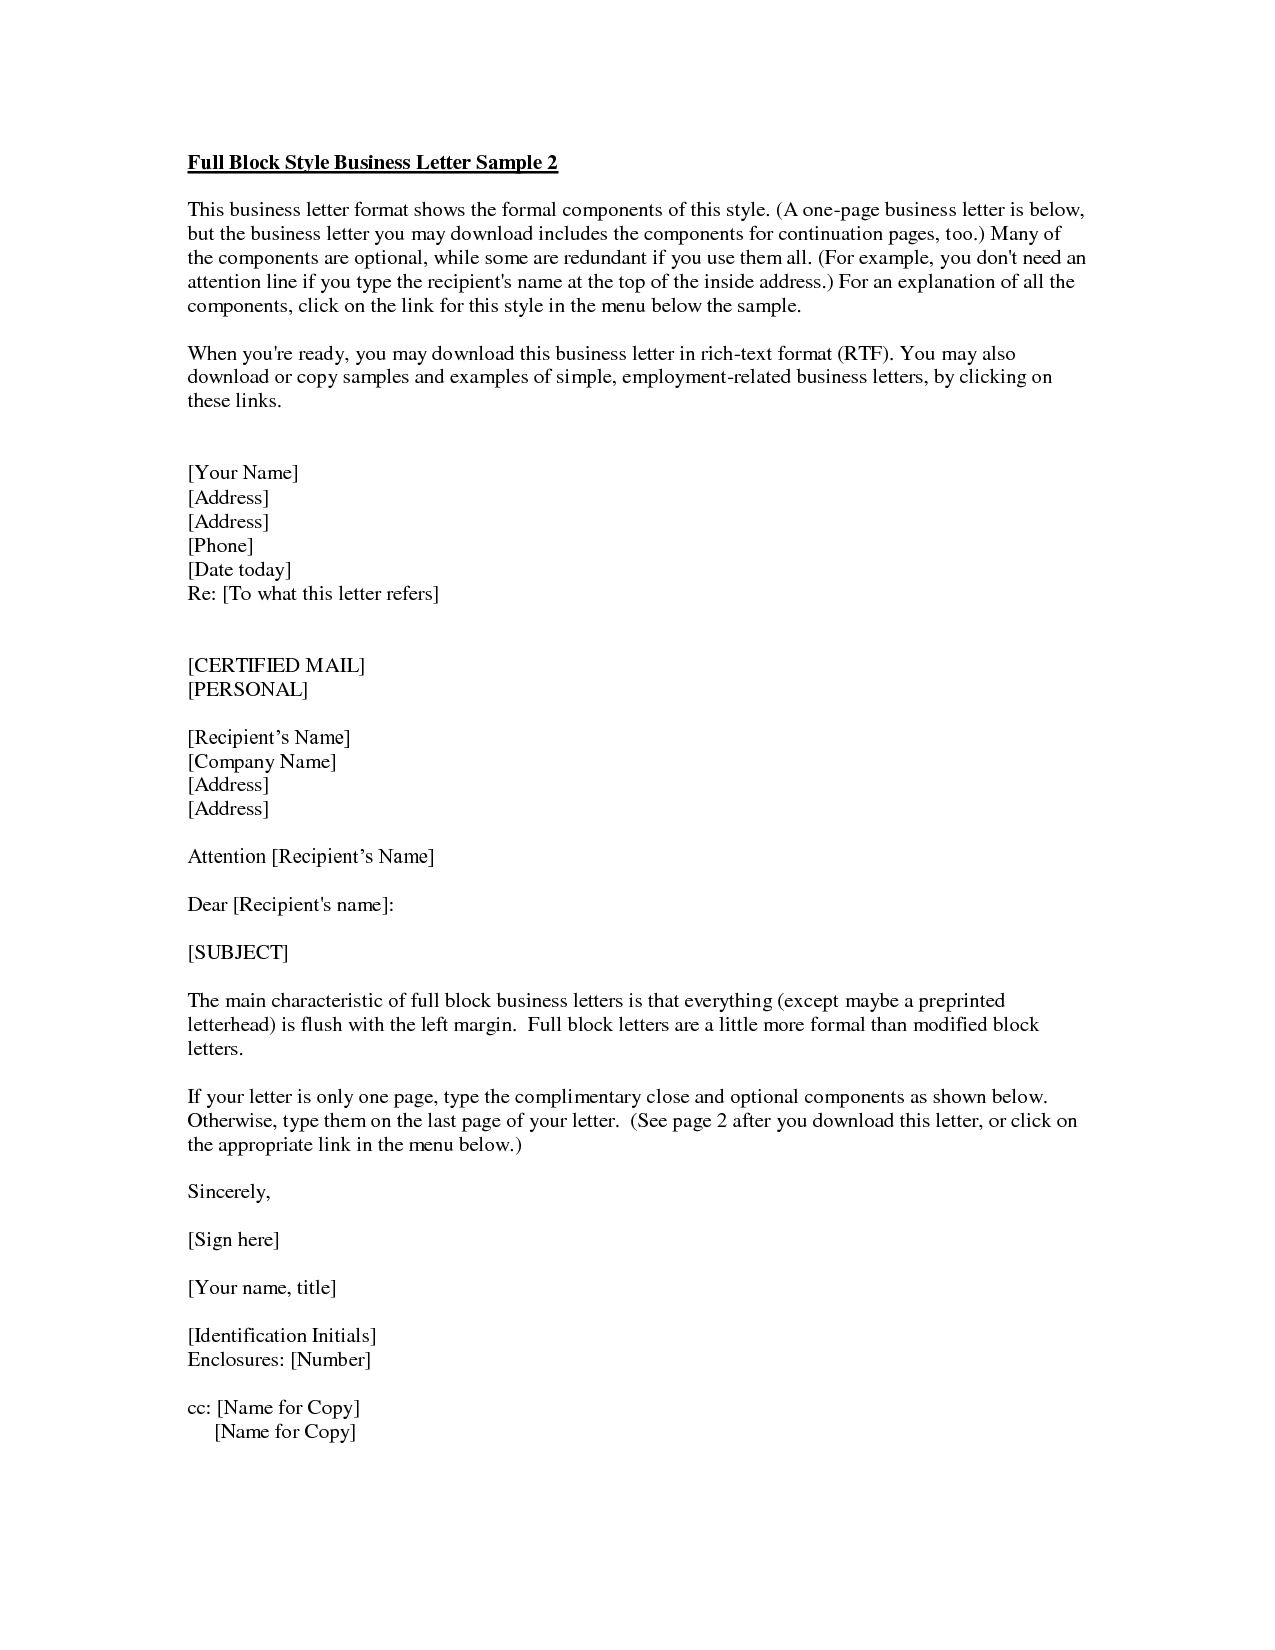 Business letter format with cc and enclosures resume pics for How to enclose resume to cover letter